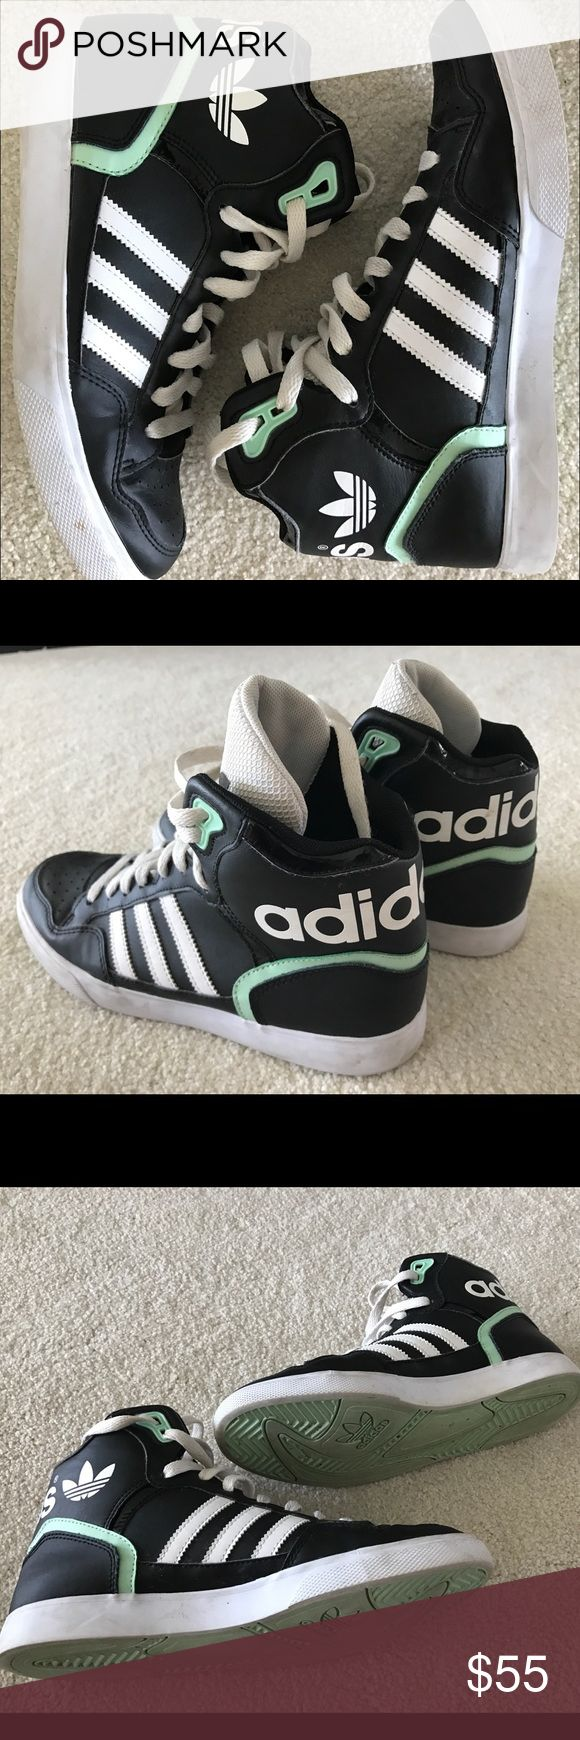 Adidas Tiffany Blue Trim High Tops Size 7.5 Black White and Tiffany Blue Adidas High Tops... Originally purchased at Nordstrom. Super comfortable and offer great support. Gently used.. message me with questions! Adidas Shoes Sneakers